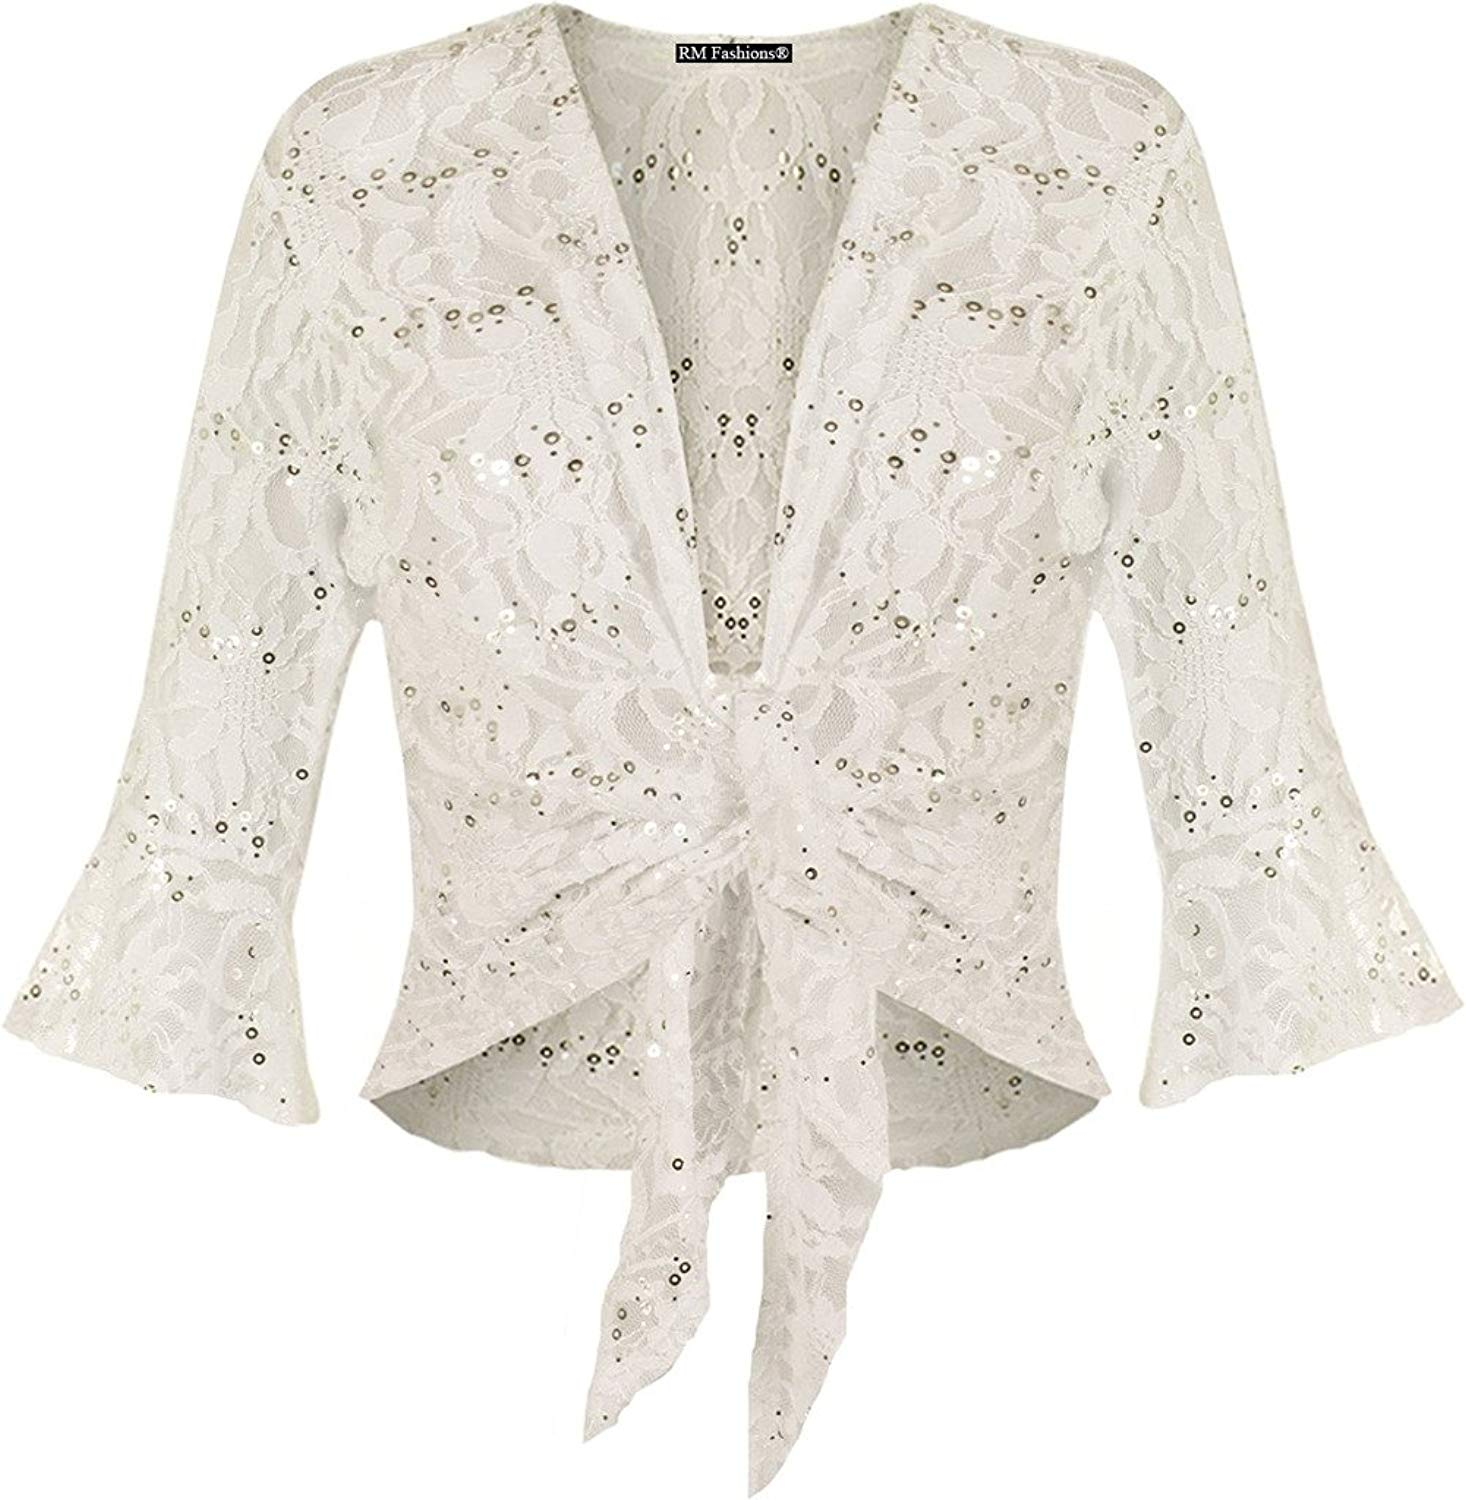 d54831c3967be Get Quotations · RM Fashions Women's Plus Size Tie up 3/4 Flared Bell Sleeve  Lace Sequin Bolero